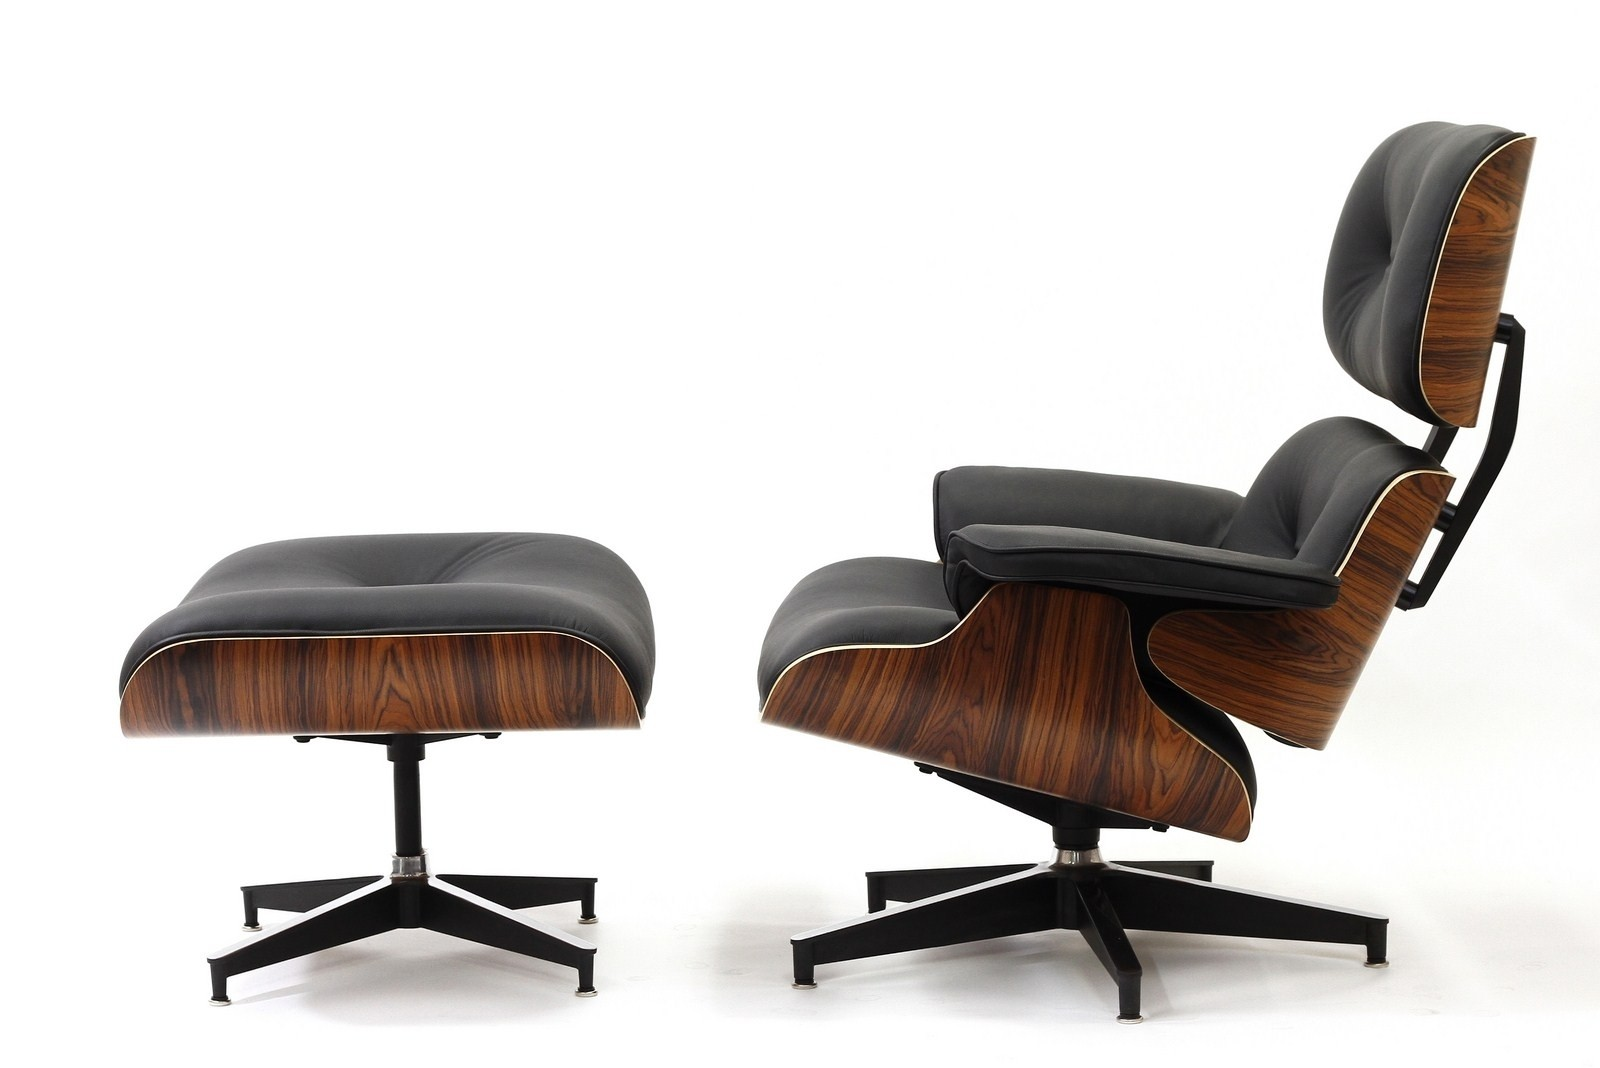 Ray And Charles Eames Charles Eames Chair Mrsapo